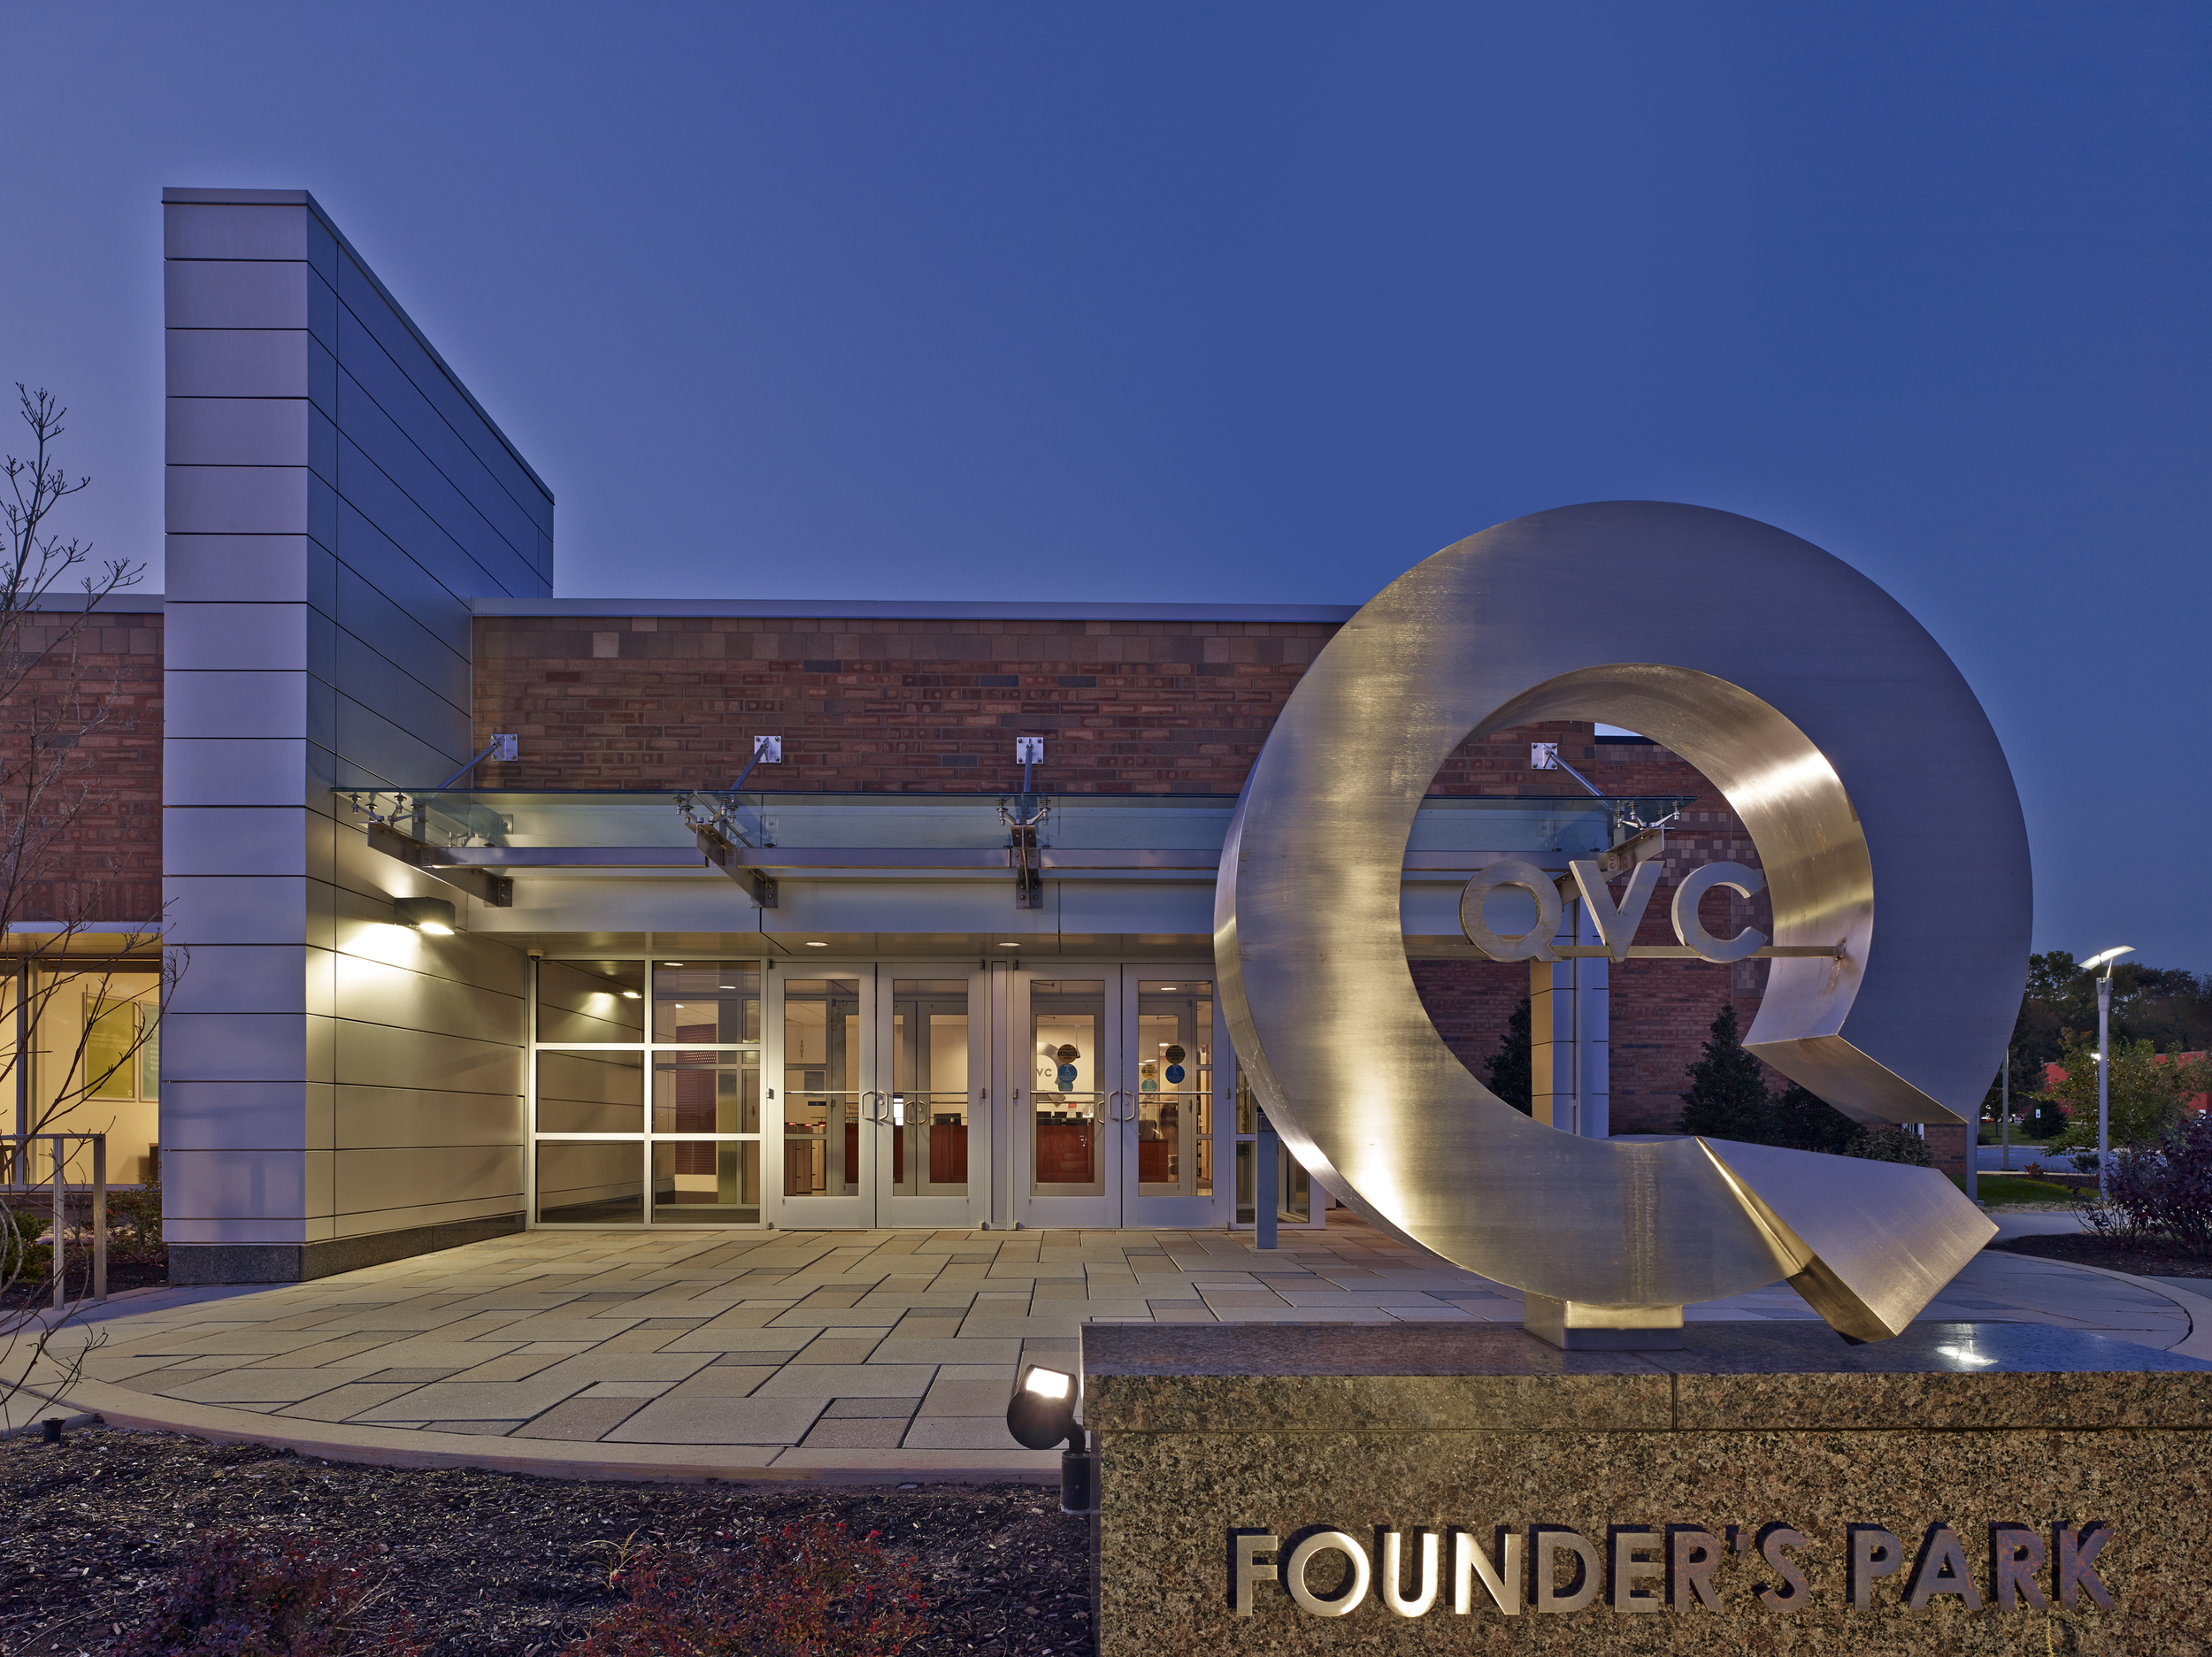 FOUNDERS PARK ENTRY